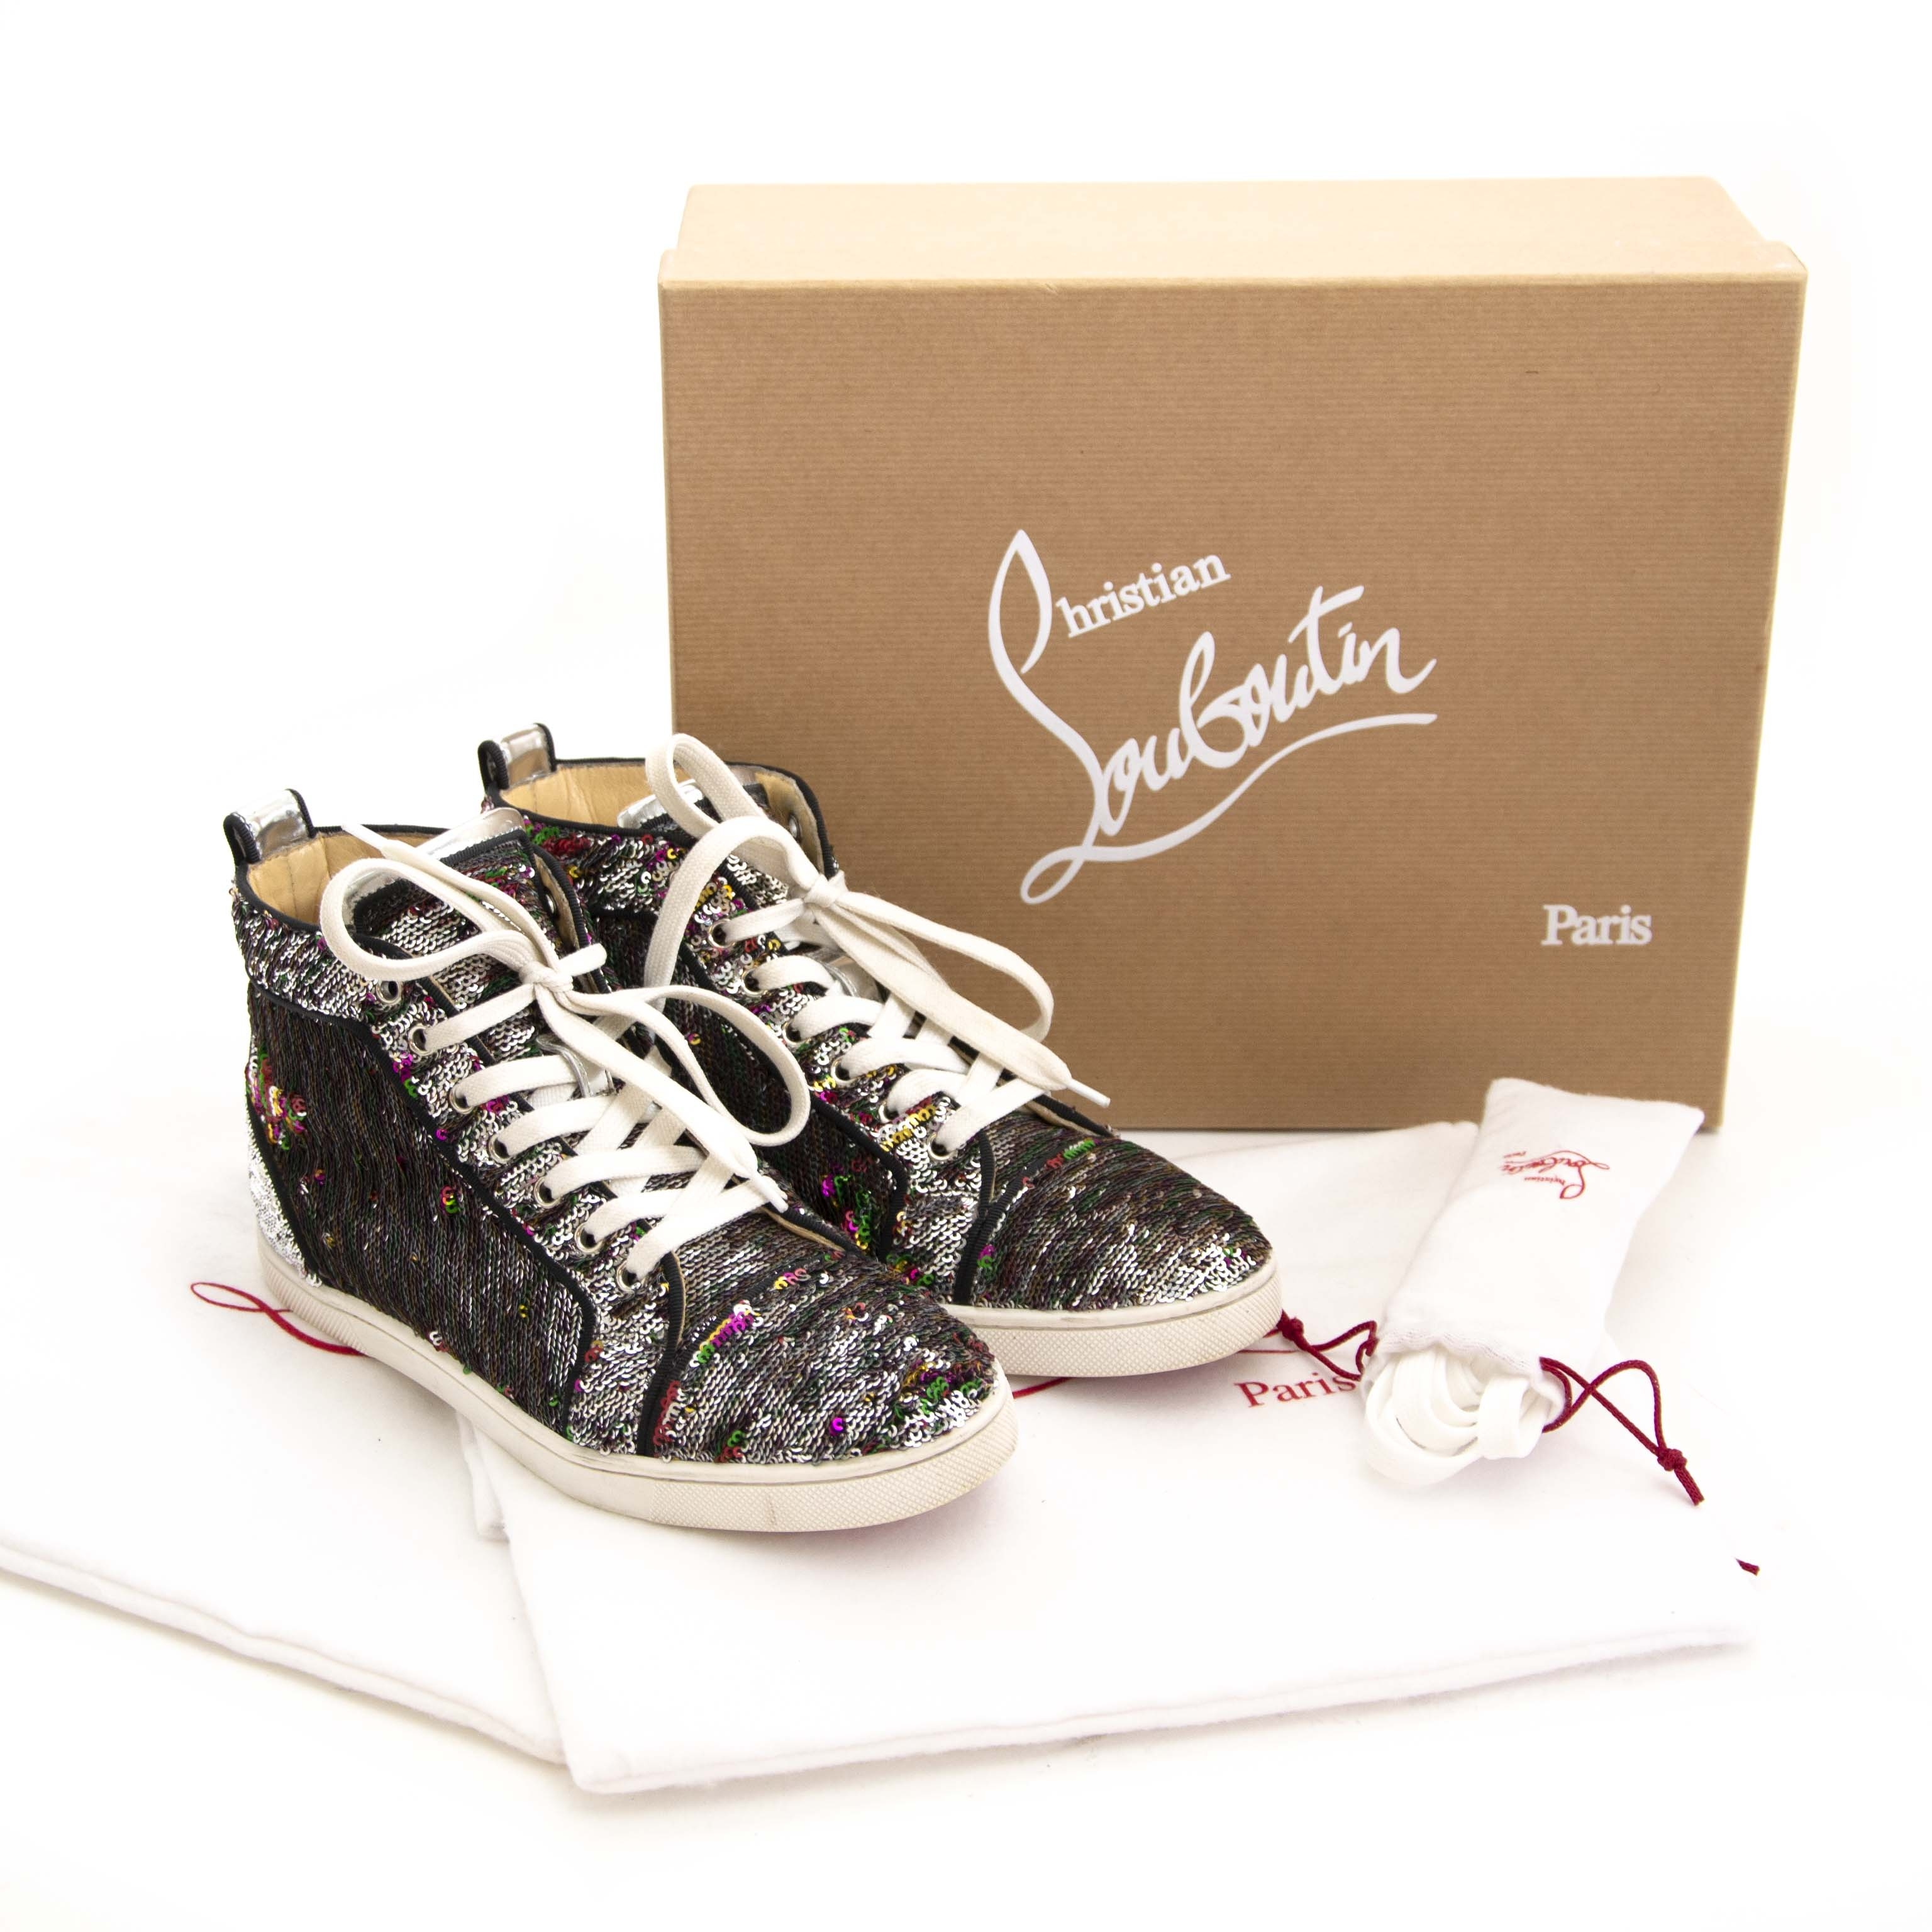 43190979b739 Buy authentic second hand vintage Louboutin Bip Bip Silver Sequin Sneakers  at online webshop LabelLOV.